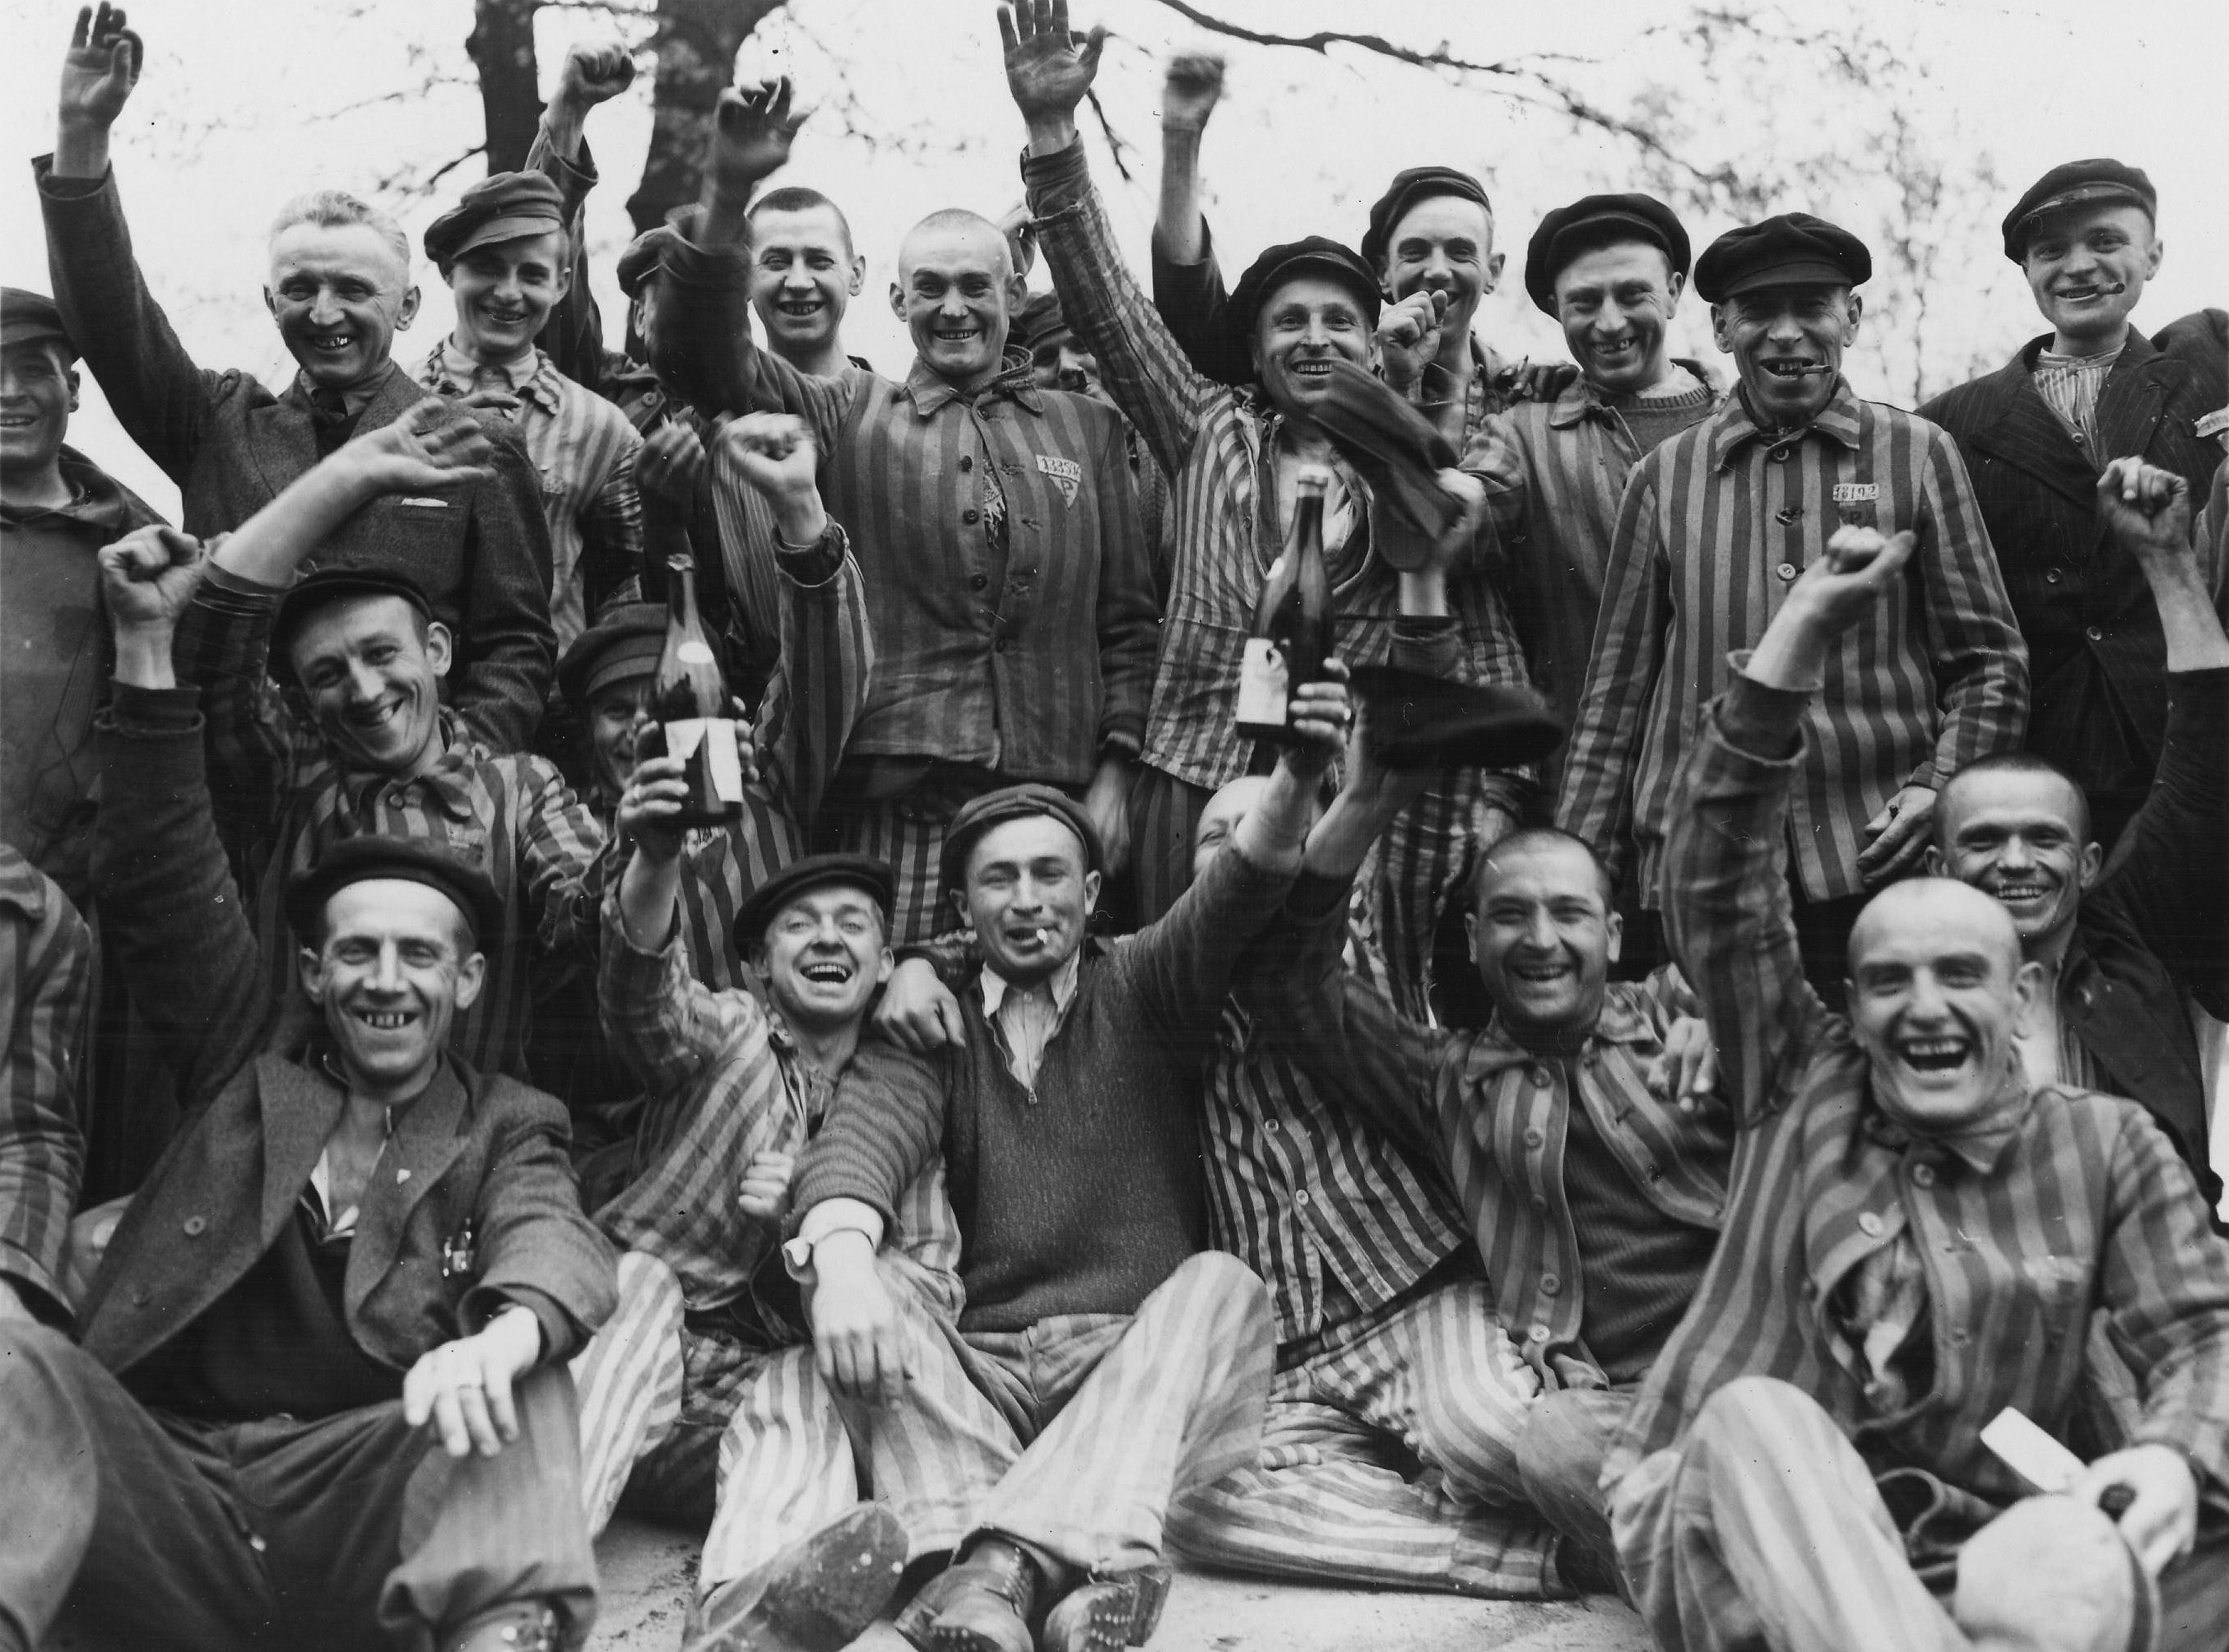 why the jews were persecuted in germany during adolf hitlers rule - bbc debate-podcast on life in nazi germany - scott allsop 's groups which were persecuted and killed included: jews certainly there was real injustice going on during the nazi regime.